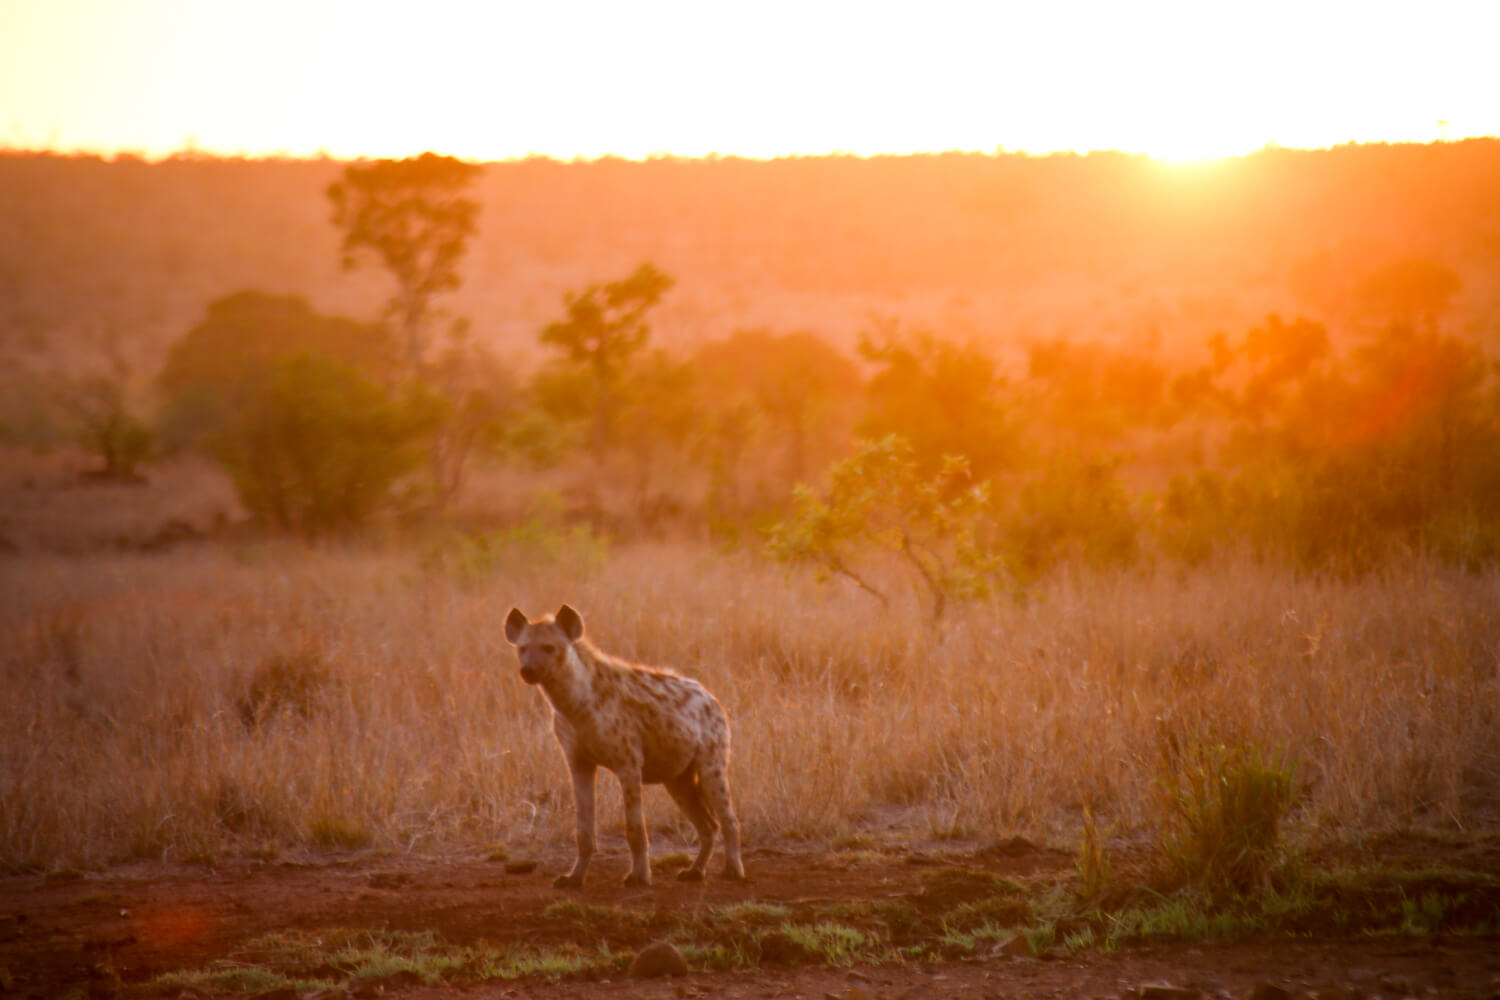 A hyena at sunrise in a 2 weeks in South Africa itinerary